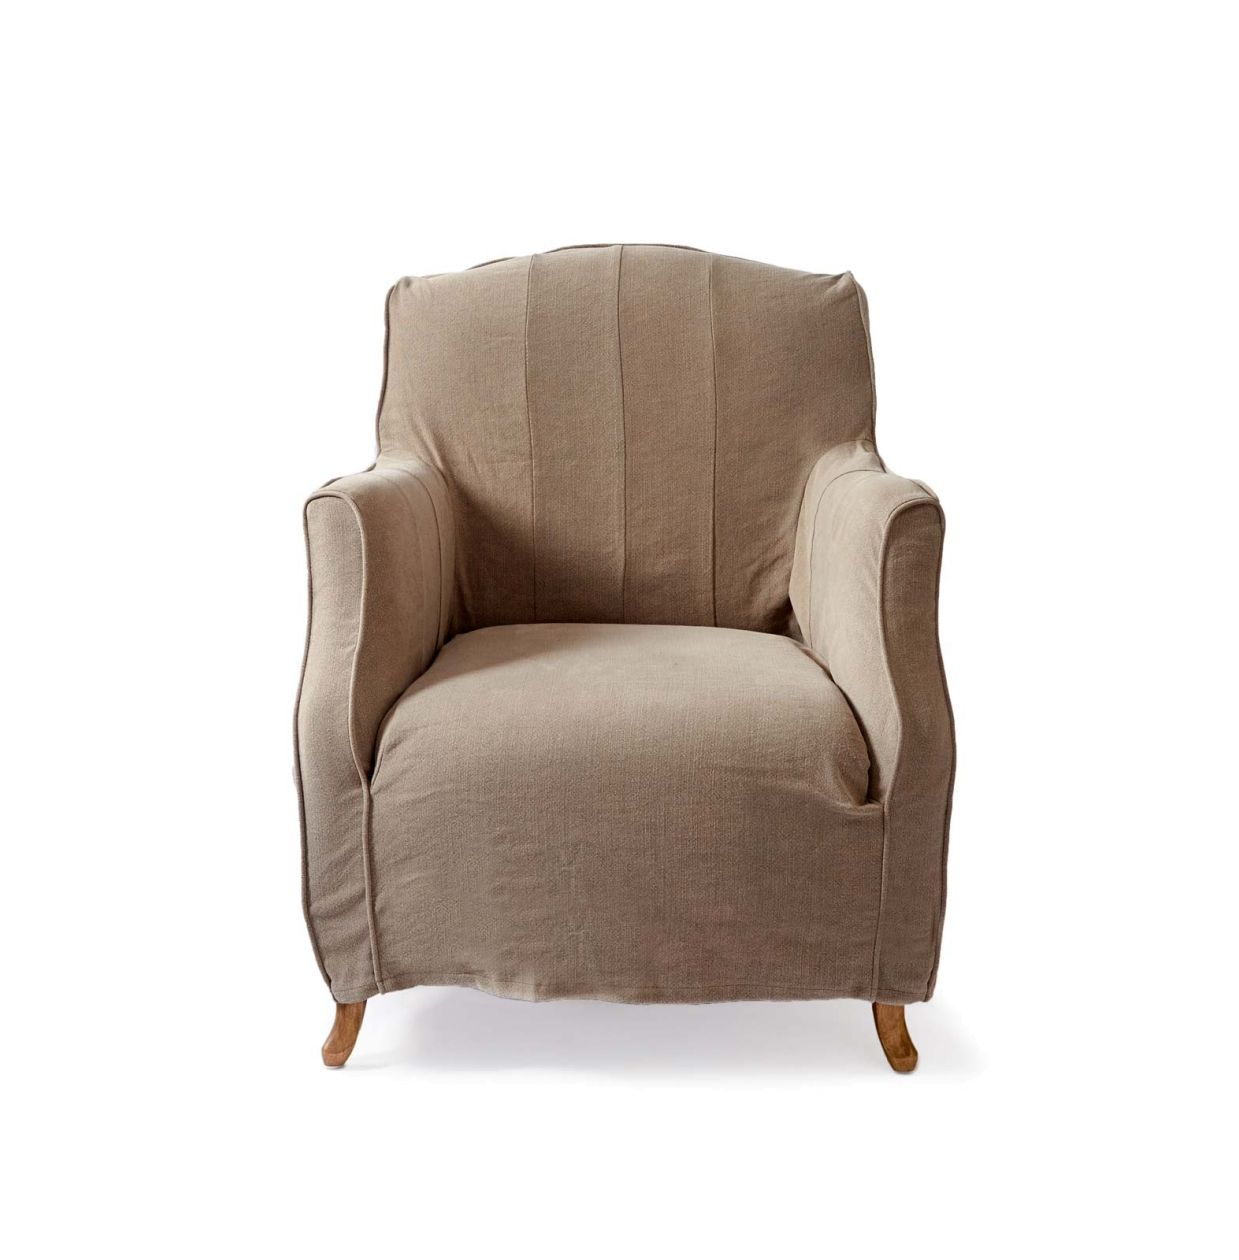 Rue du Senat Fauteuil, washed linen, taupe - Woonkamer | Rivièra ...